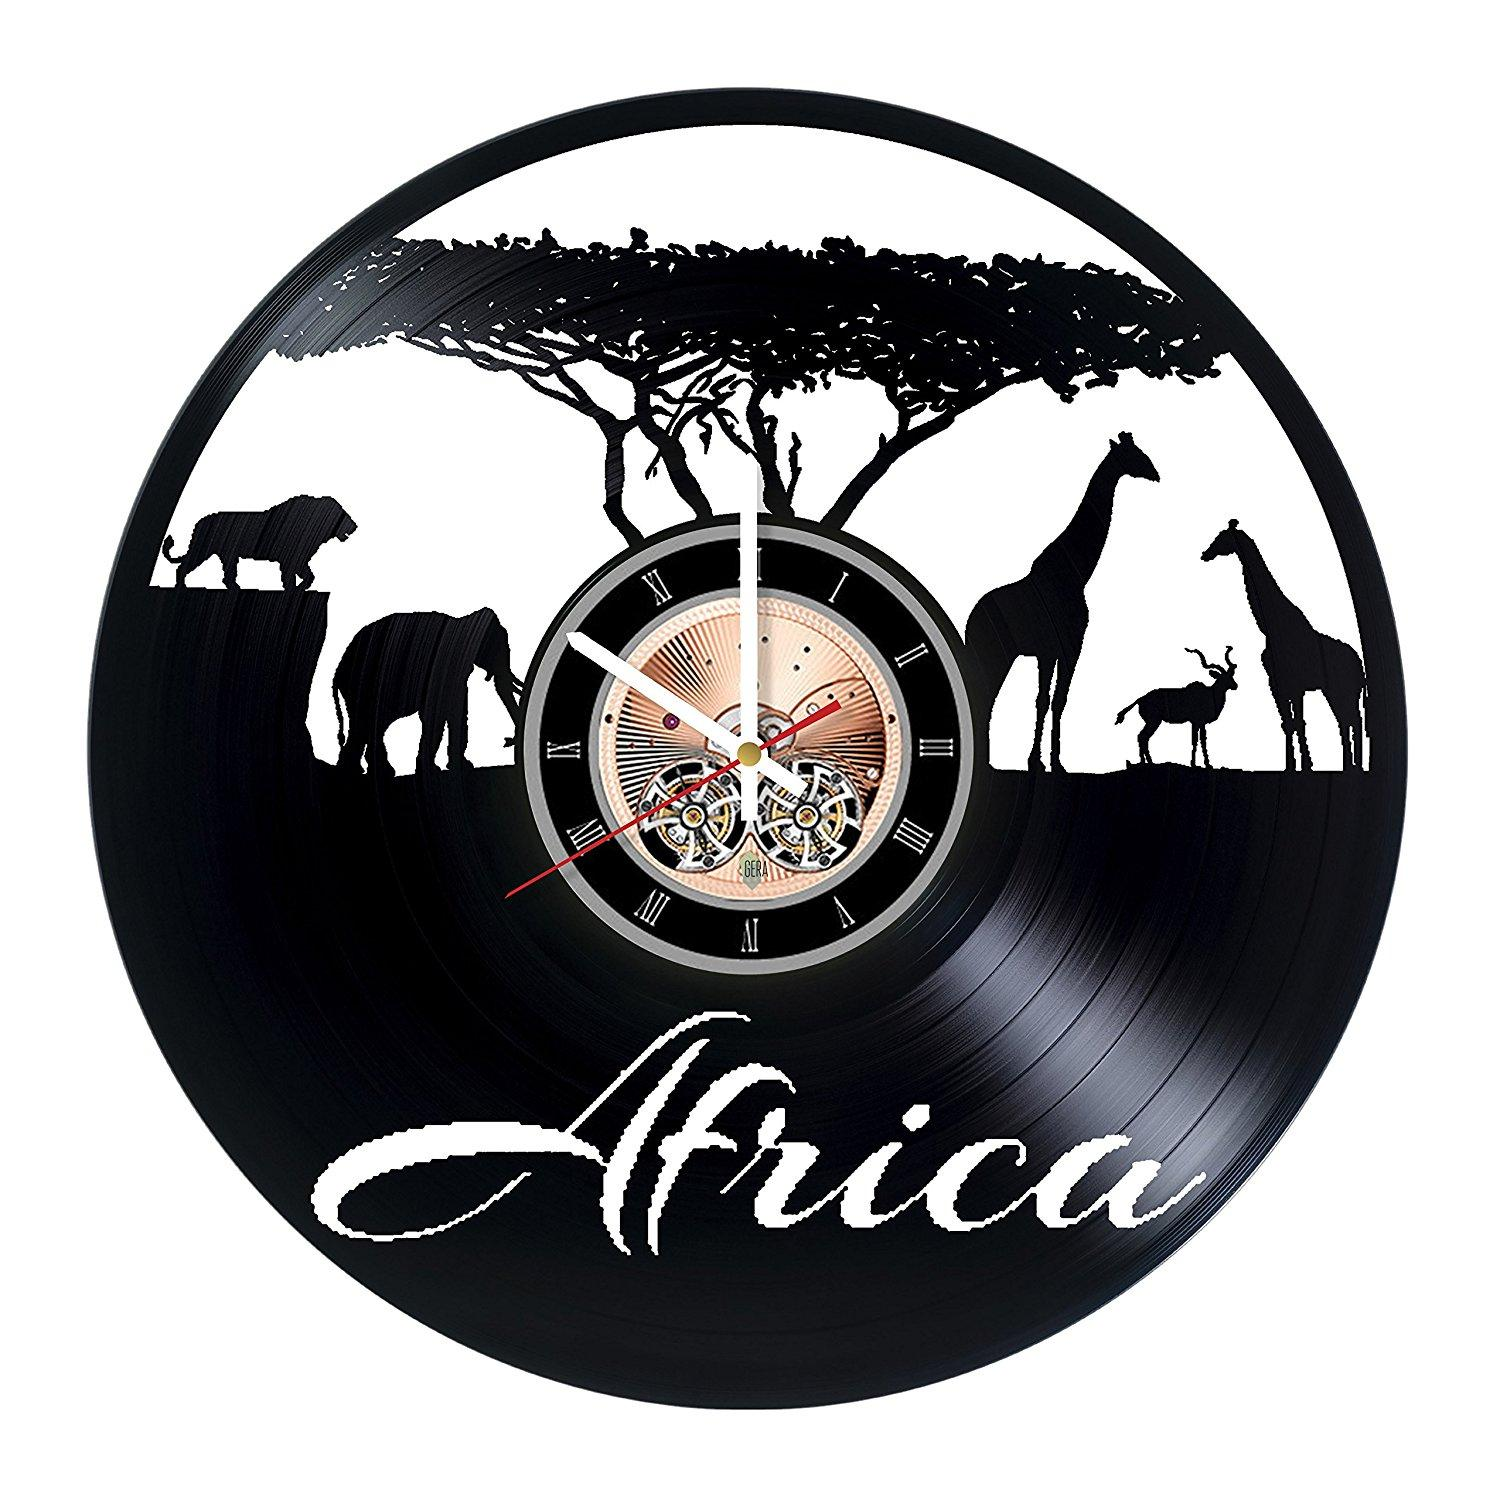 South africa vinyl record wall clock kids room wall decor gift see larger image amipublicfo Gallery